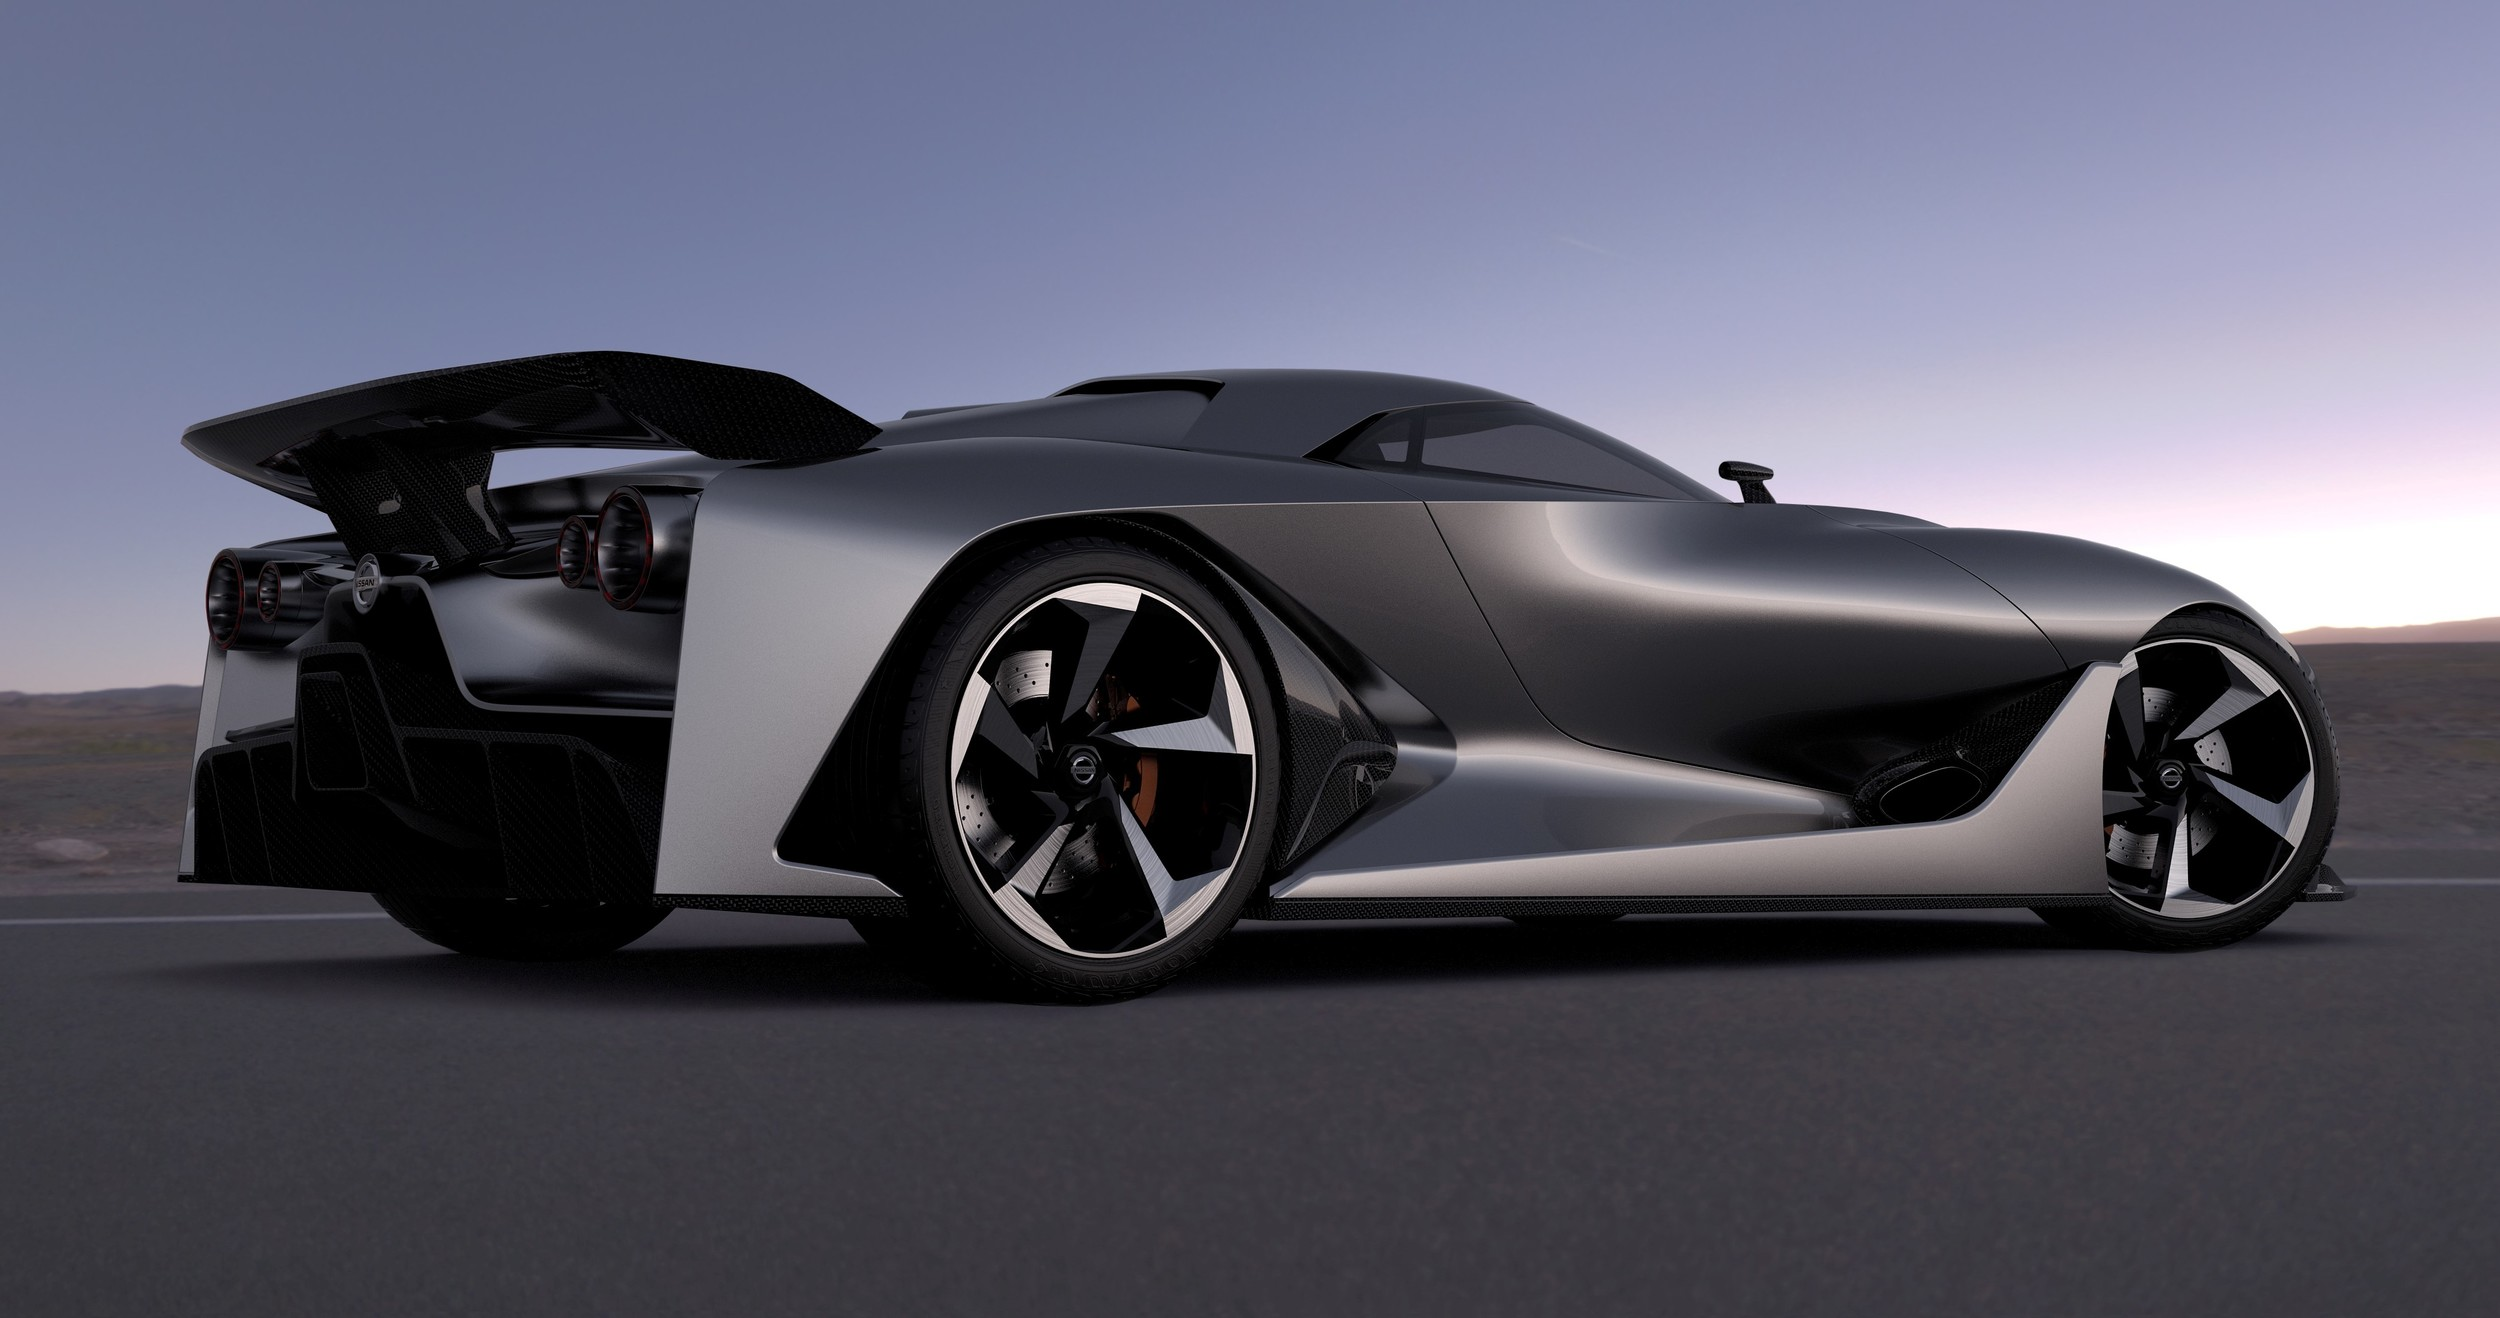 2014_Nissan_Concept_2020_Vision_Gran_Turismo_002_8875.jpg